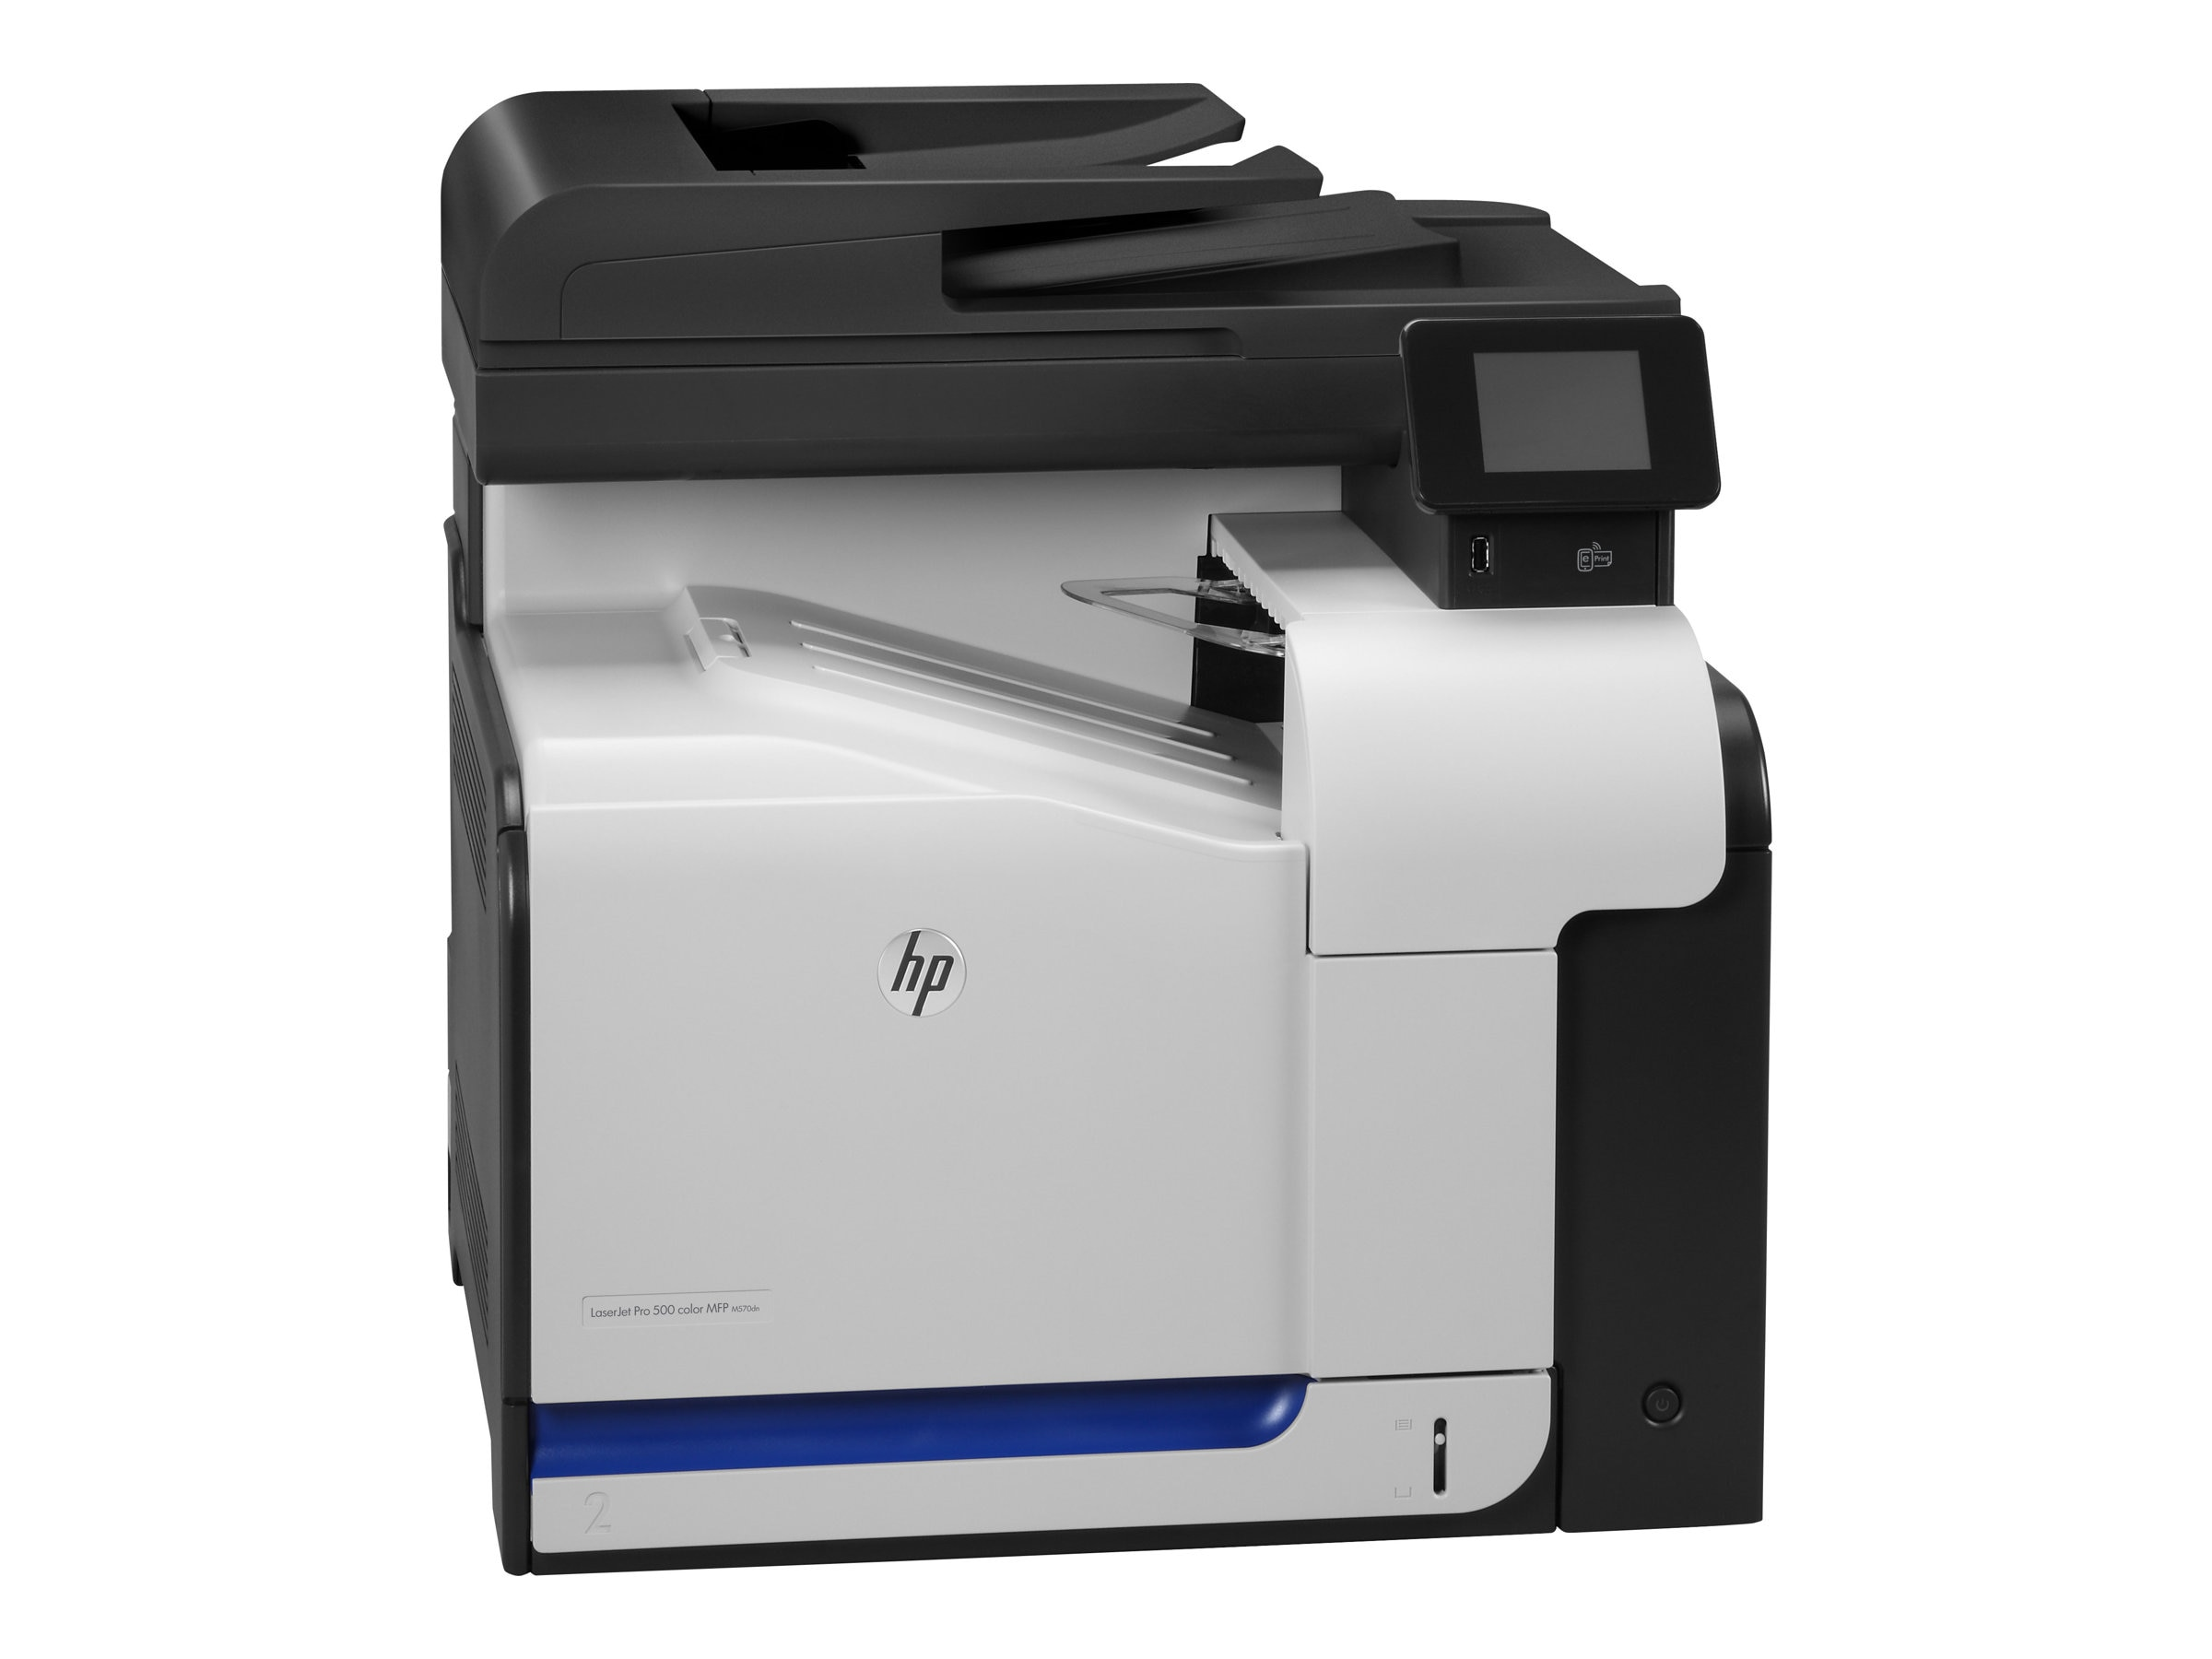 HP LaserJet Pro 500 color MFP M570dn $999 - $250 instant rebate = $749 expires 2 29 16, CZ271A#BGJ, 14713474, MultiFunction - Laser (color)